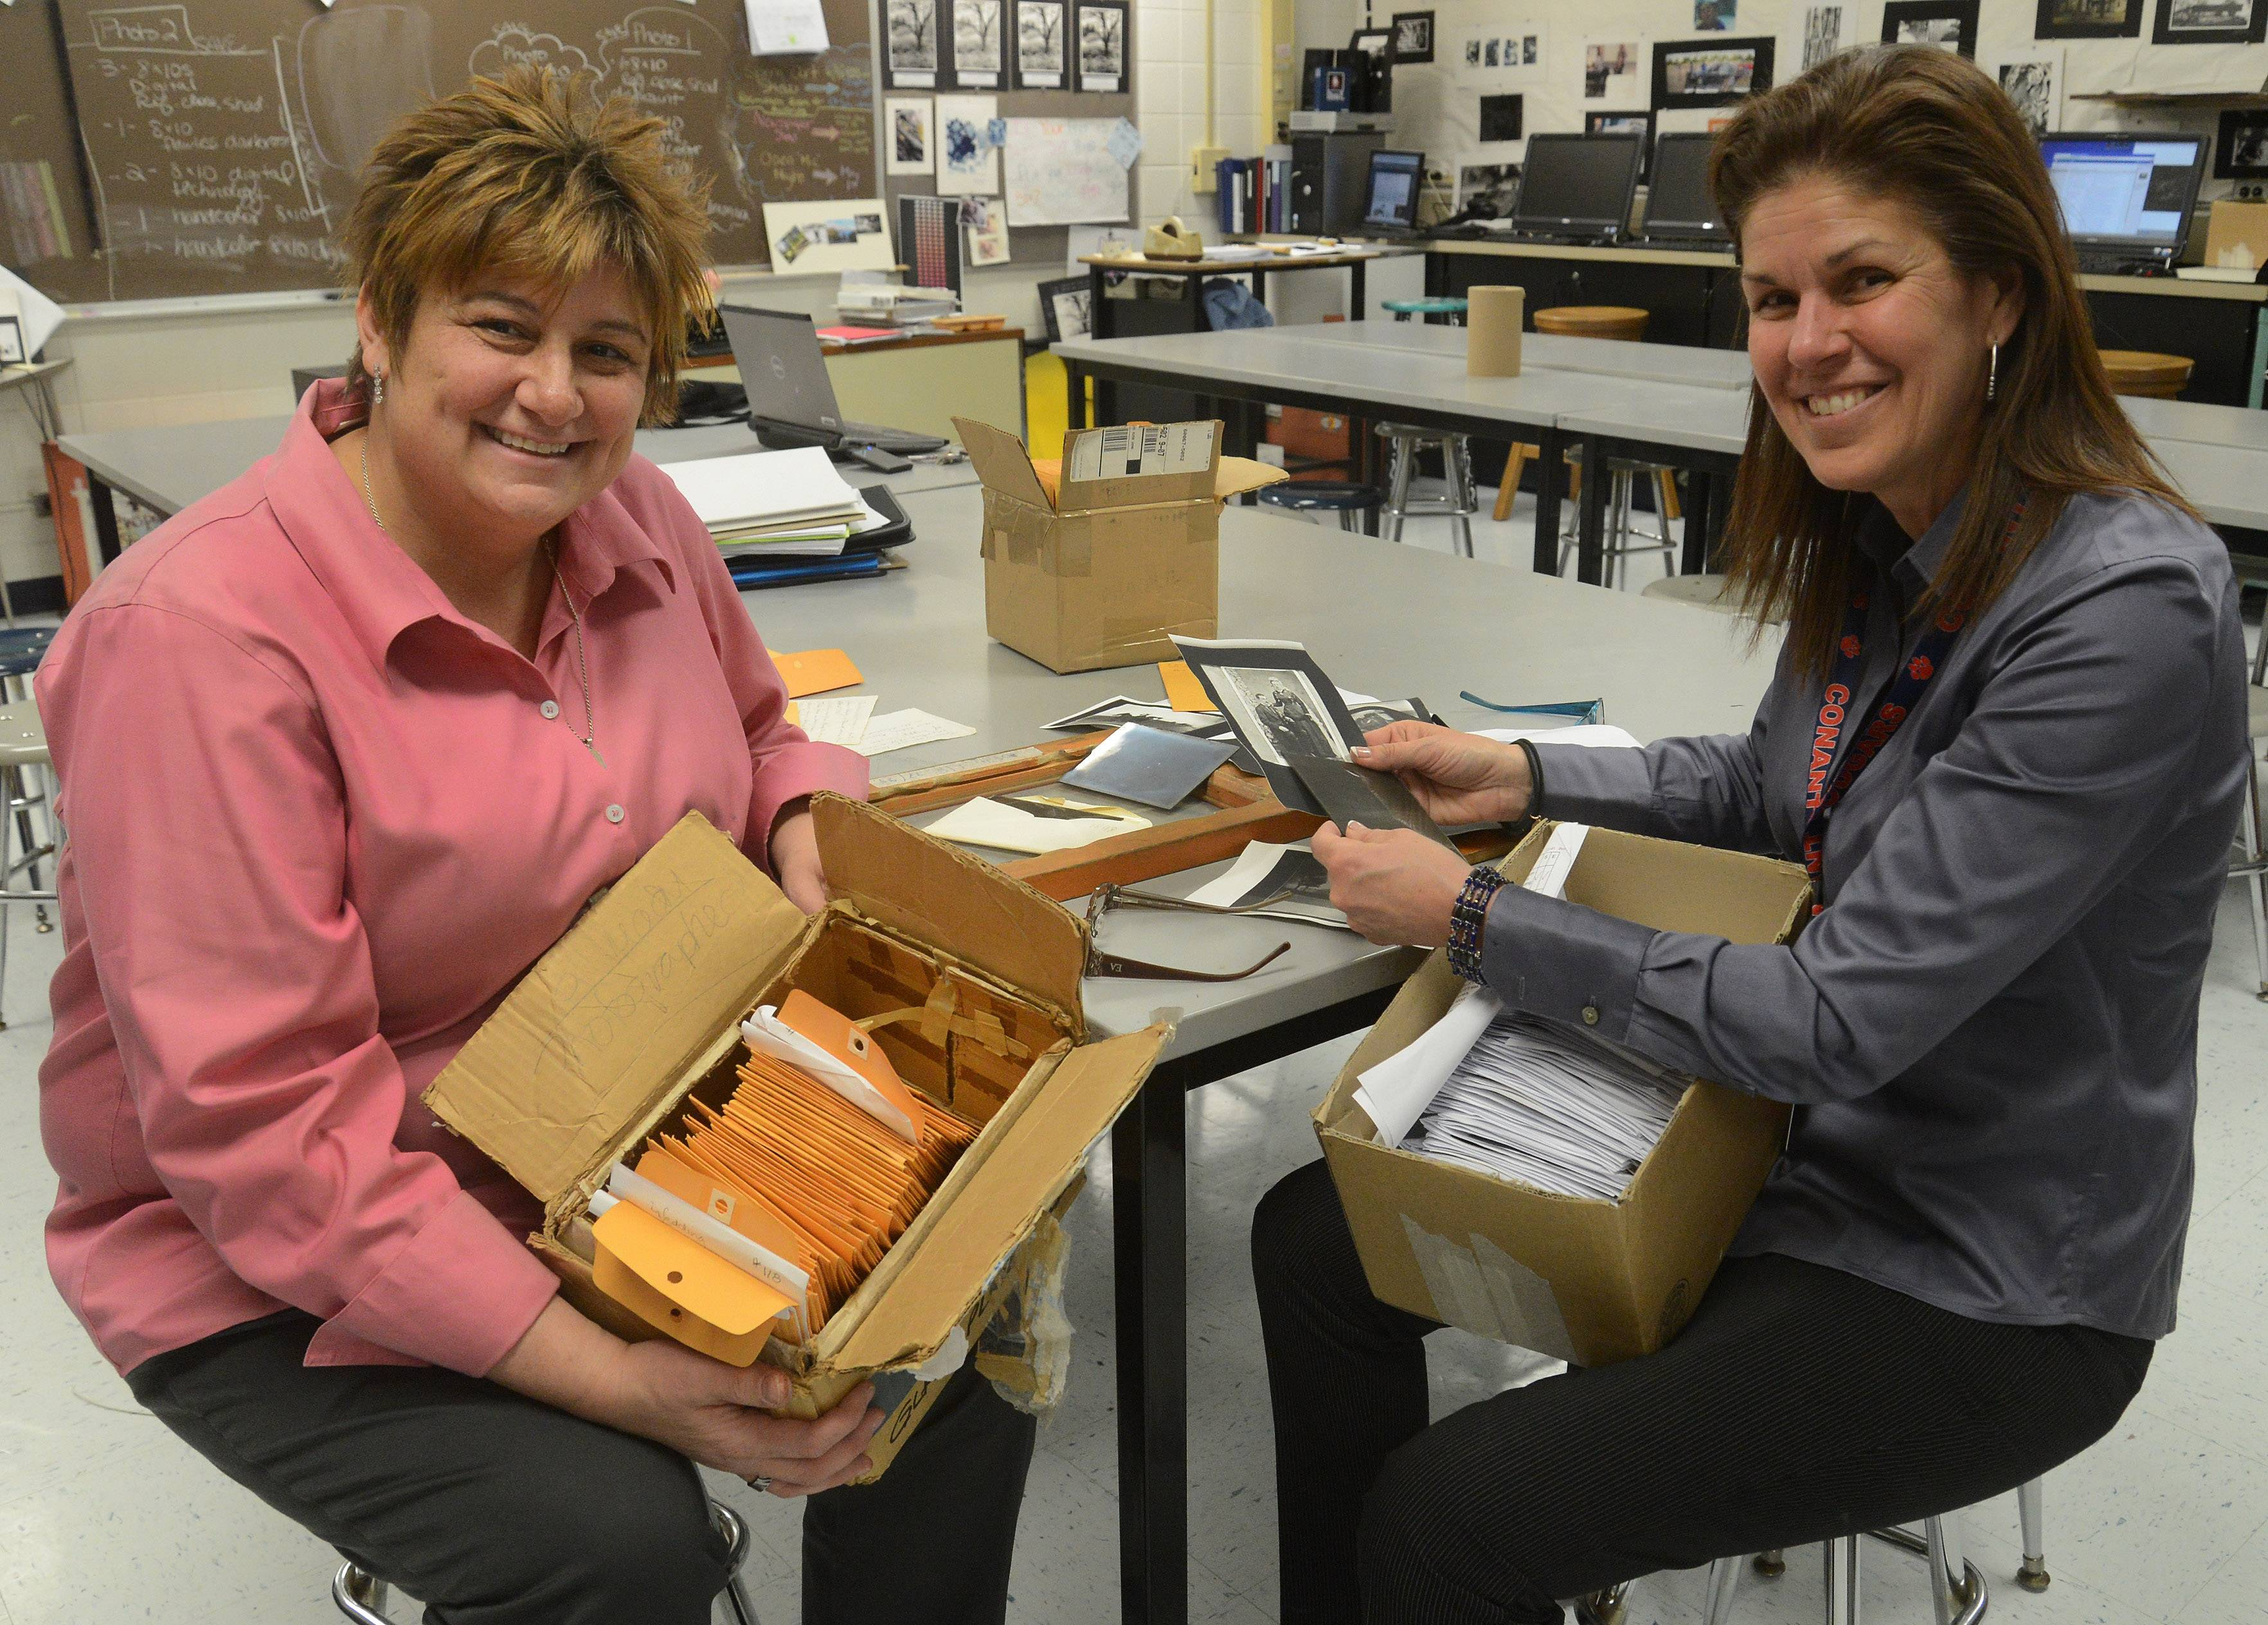 Conant High School teachers Denise Mitchell, left, and Linda Patino-Goergen, with some of the more than 100 glass plate images.